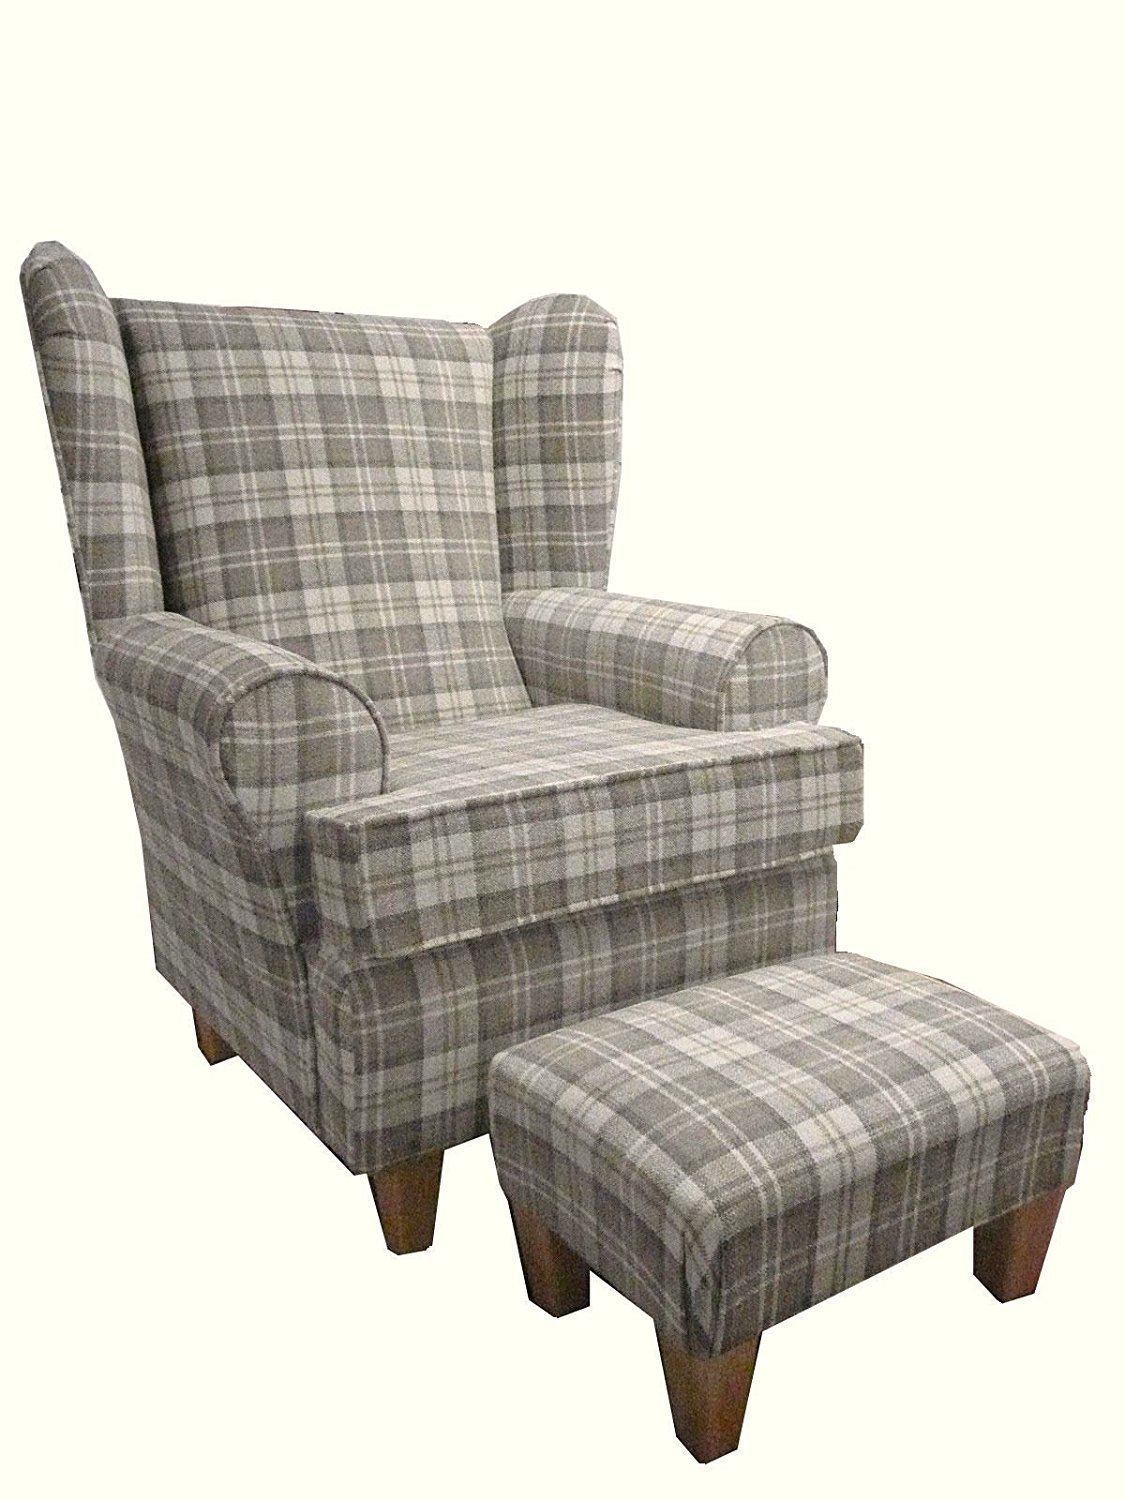 Wingback Recliners Chairs Living Room Furniture Lounge Wing Chair Home Furniture Wing Back Chairs Neyland